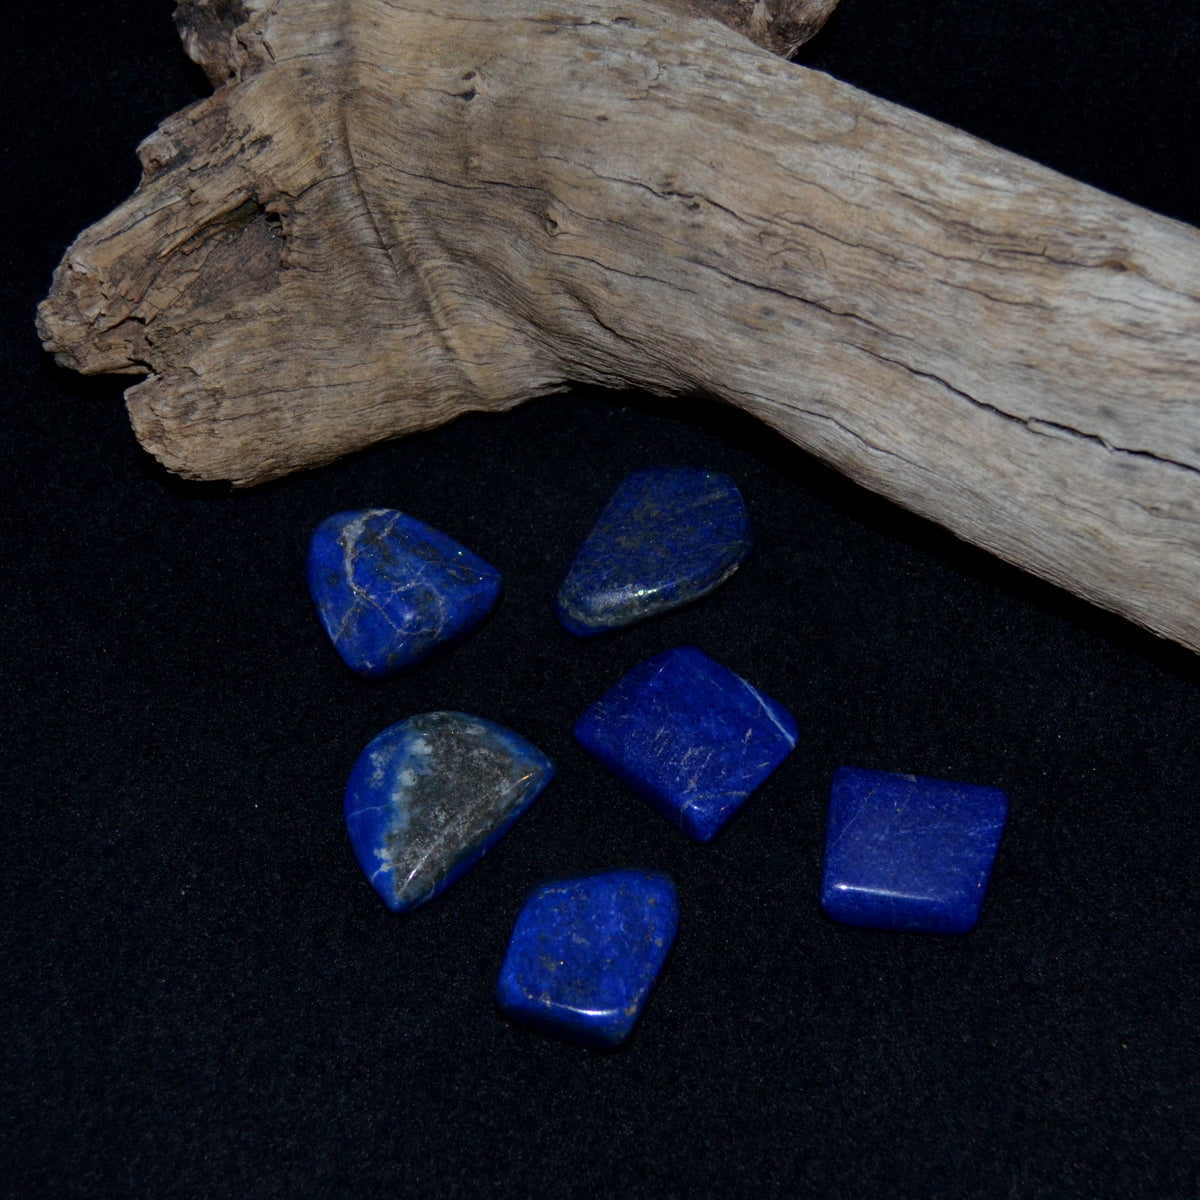 Lapis Lazuli Tumble Stones - Intuition Visions Past Lives Knowing - Shop now at Illiom Crystals - We have Afterpay